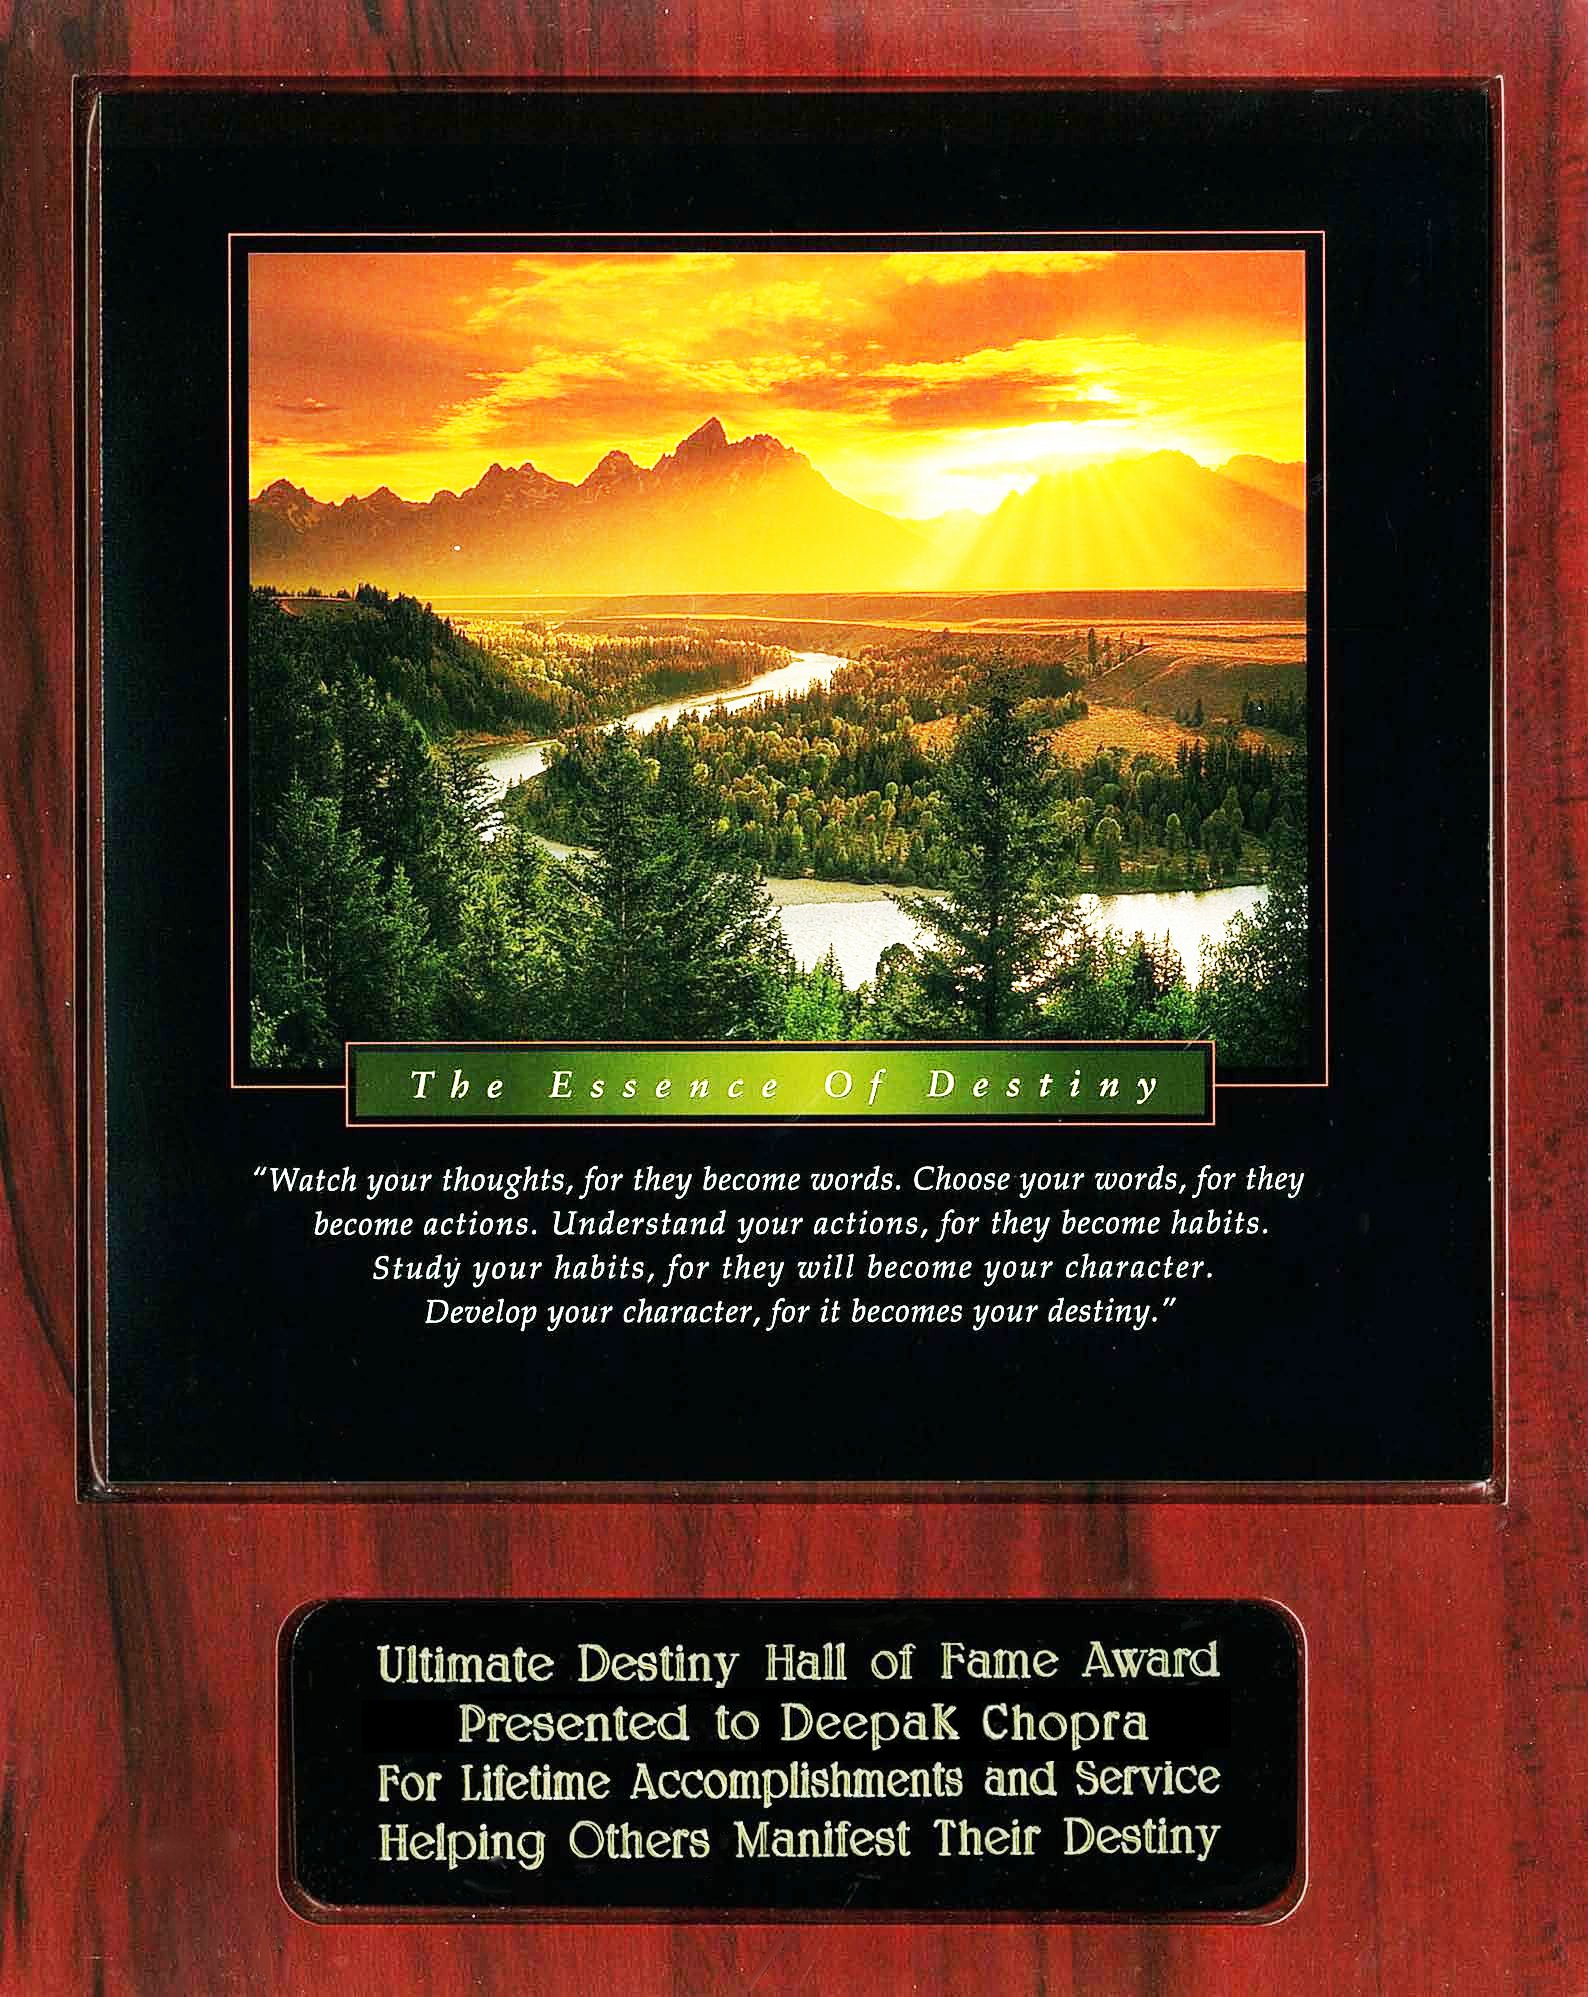 Deepak Chopra Ultimate Destiny Hall of Fame Award Recipient Plaque